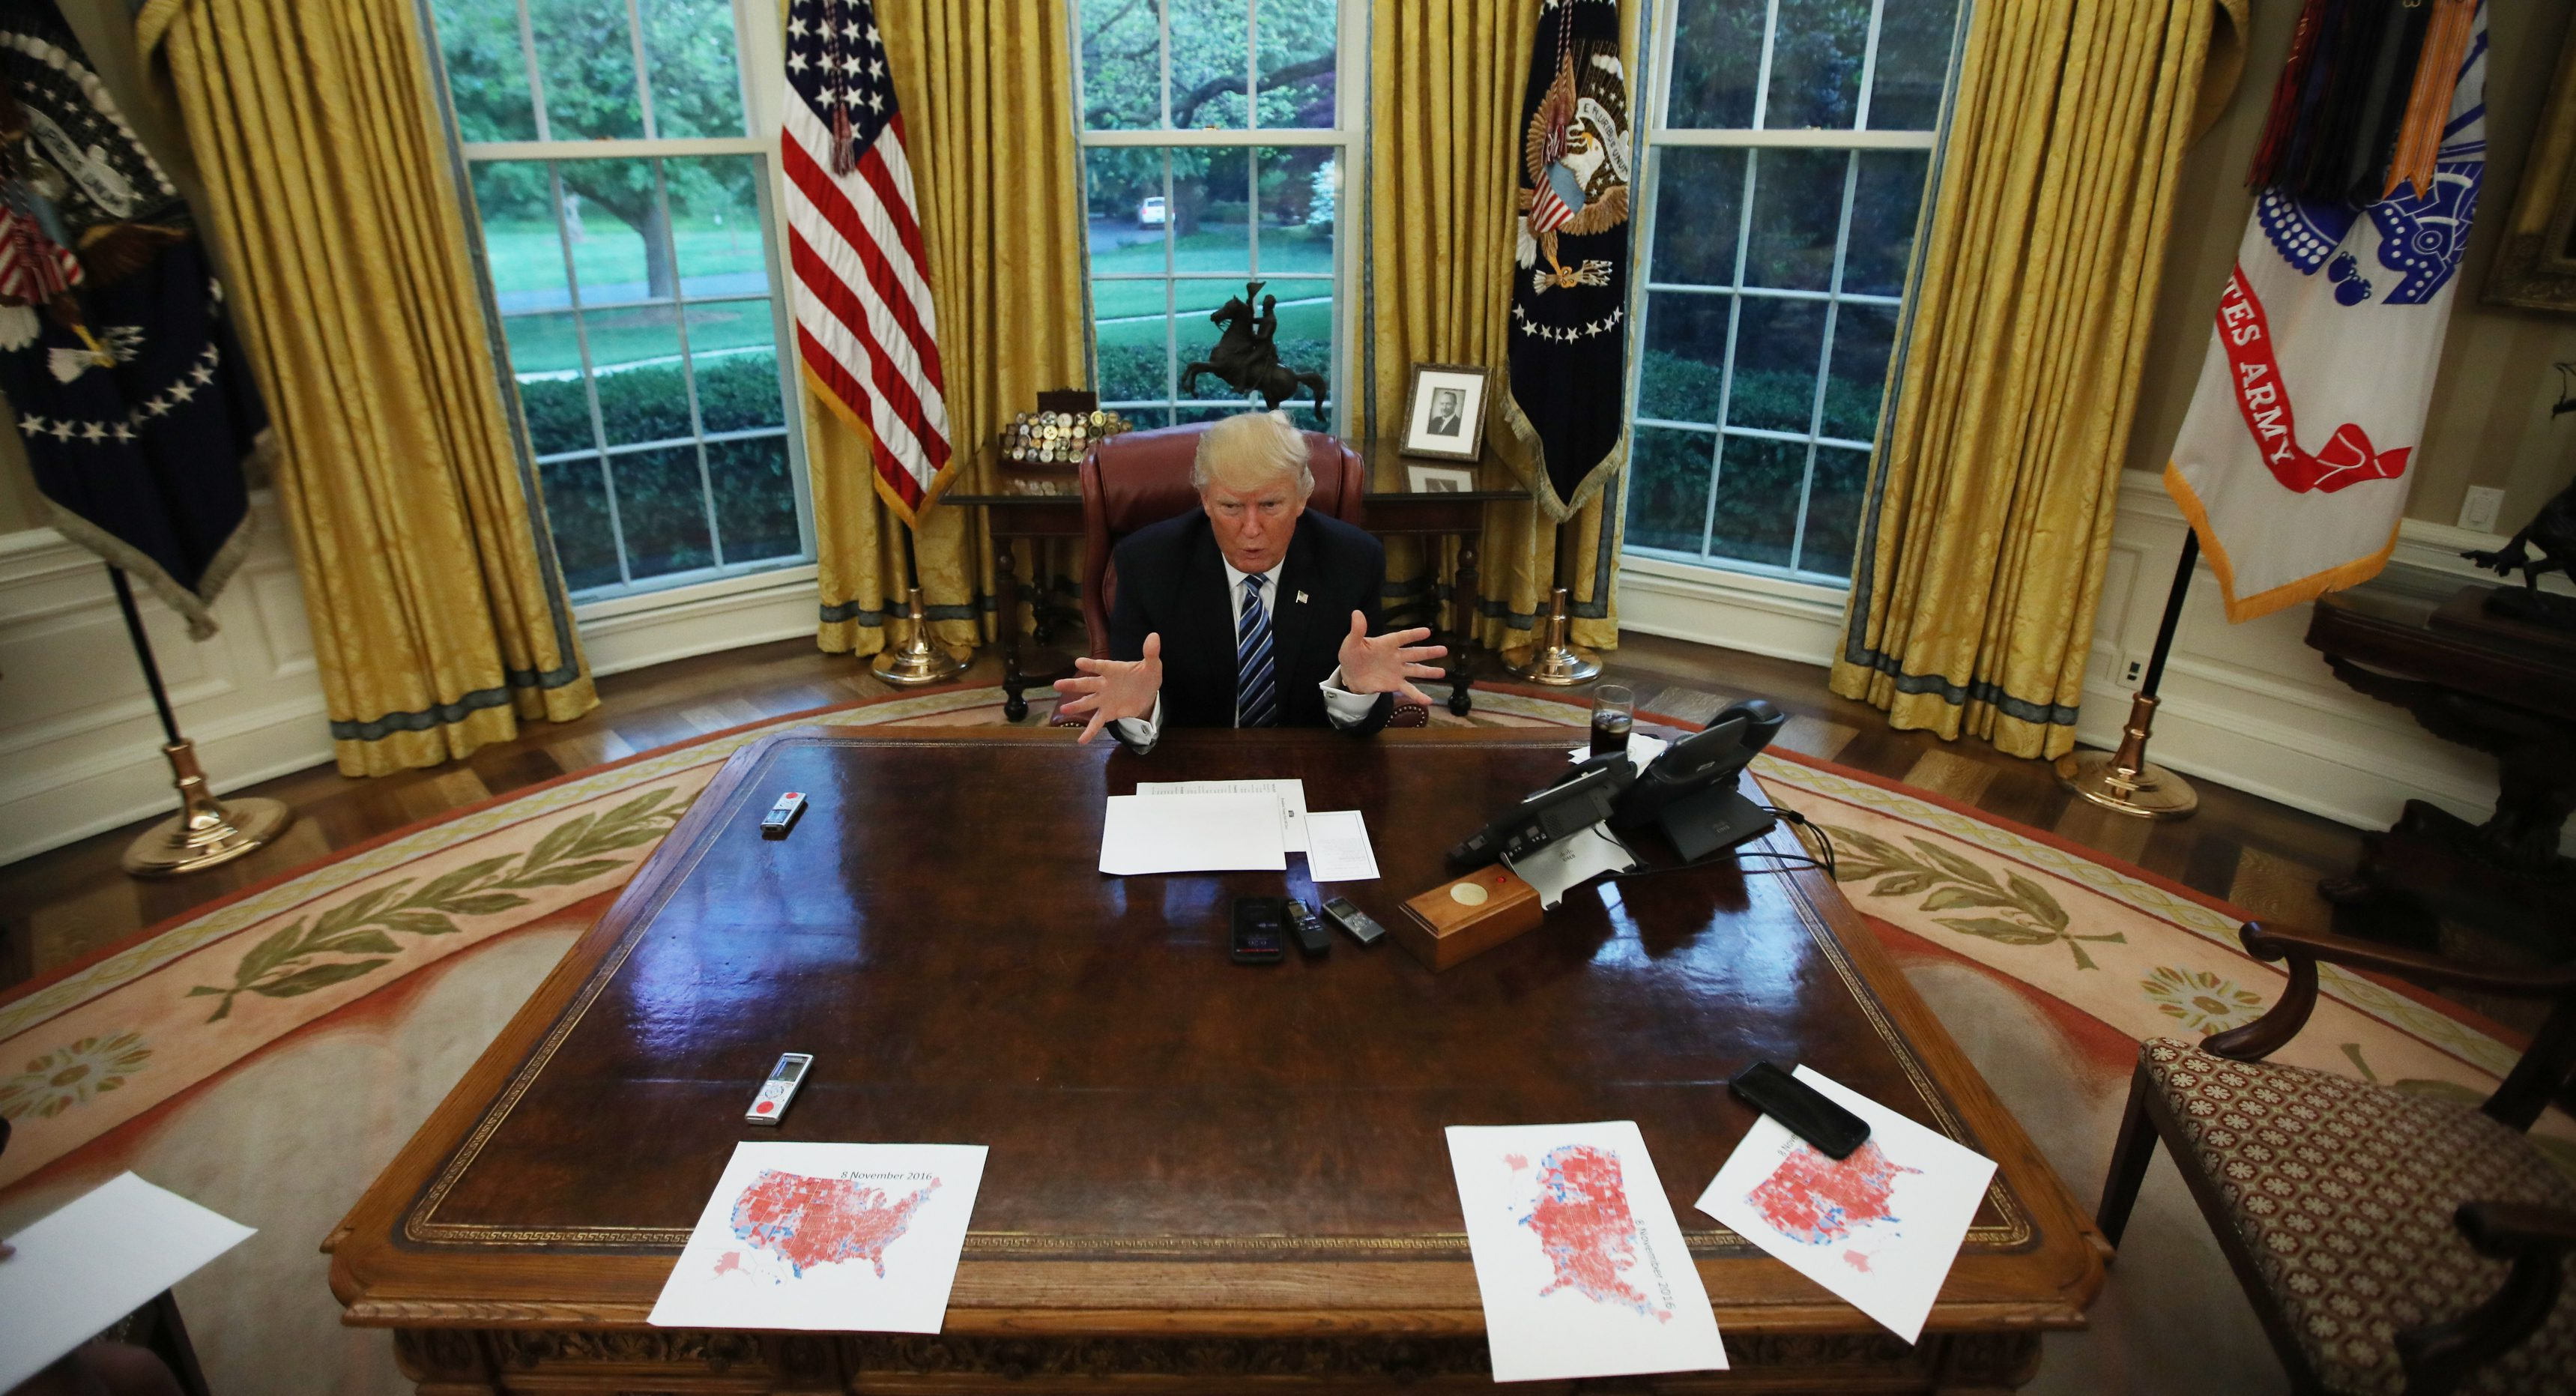 oval office chair b and q garden covers trump at 100 days an photo perfectly